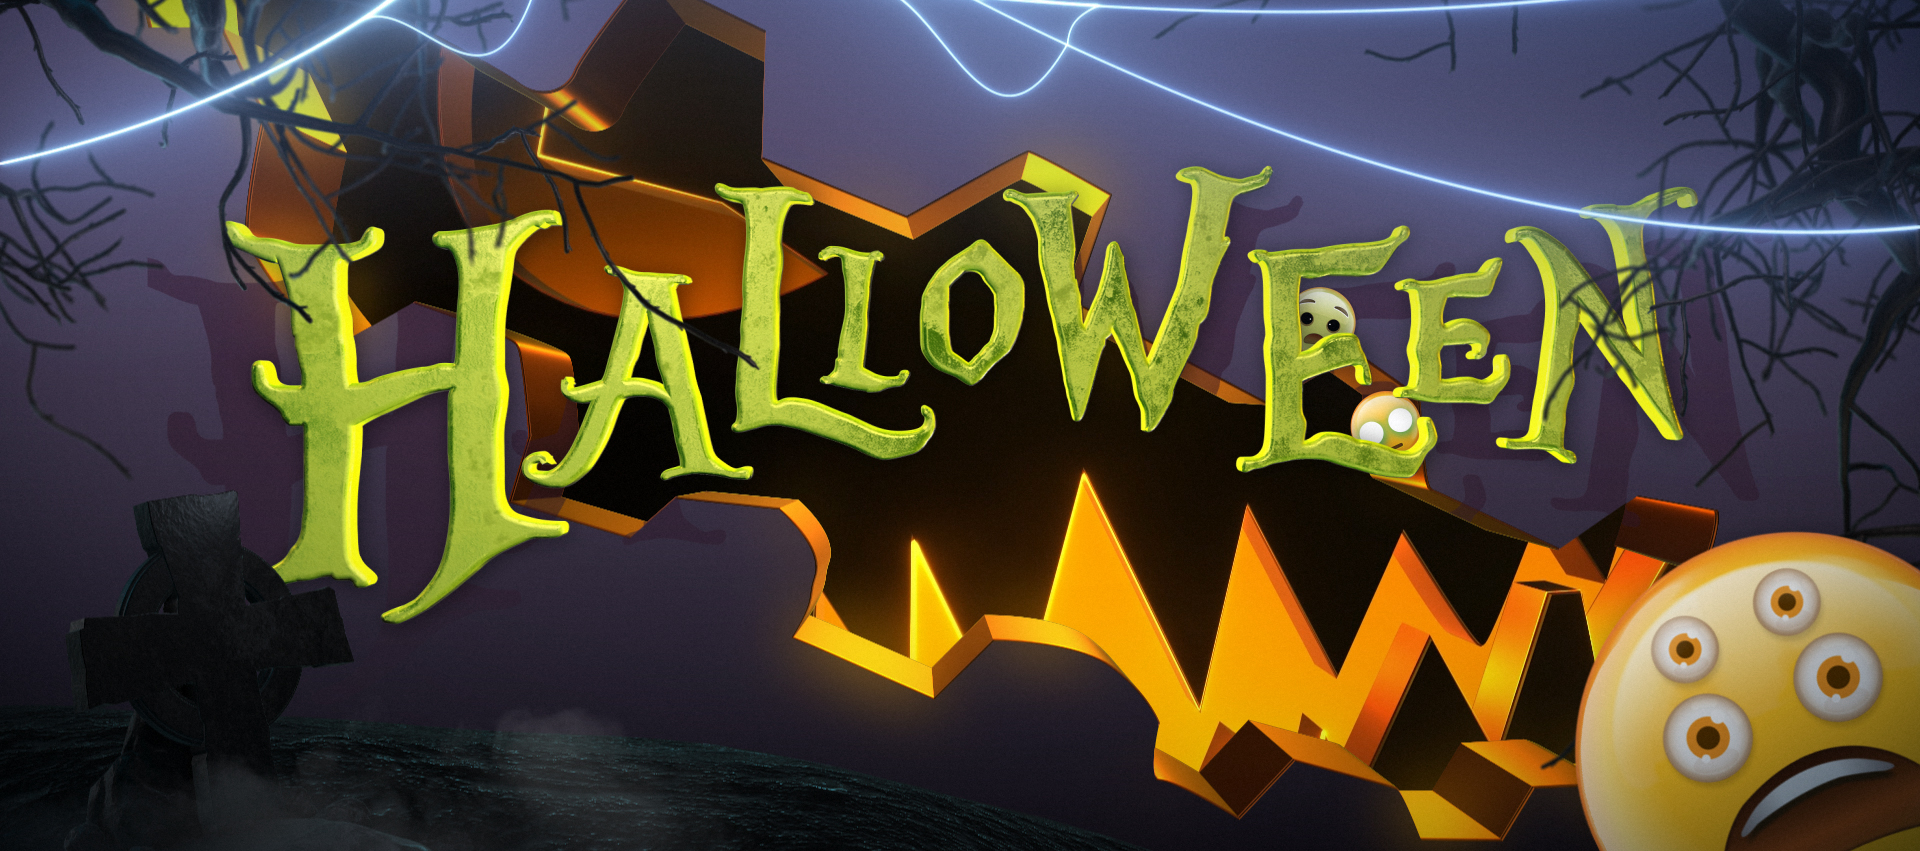 Halloween, motion graphic, animation, animated, elements, lower third, transition, pumpkin, horror